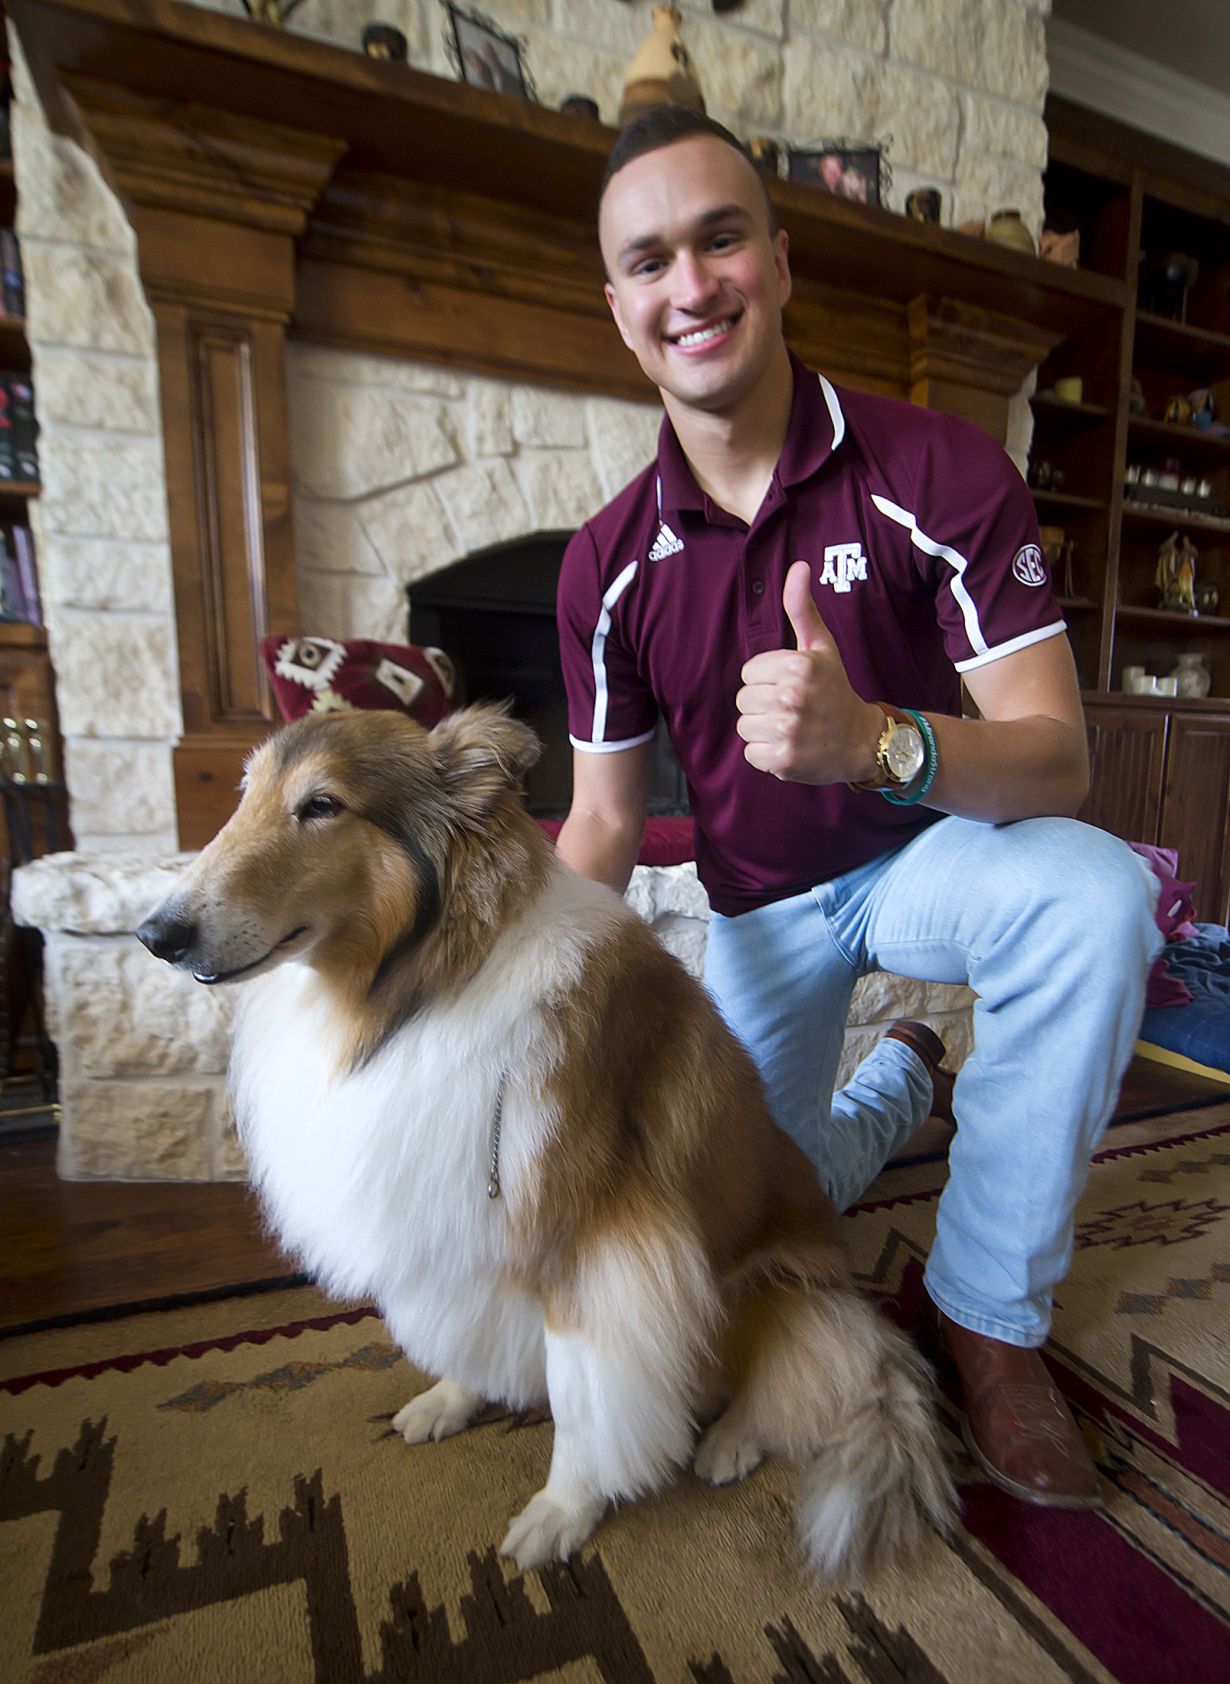 Reveill Life With Reveille Viii Ryan Kreider On Building A Relationship